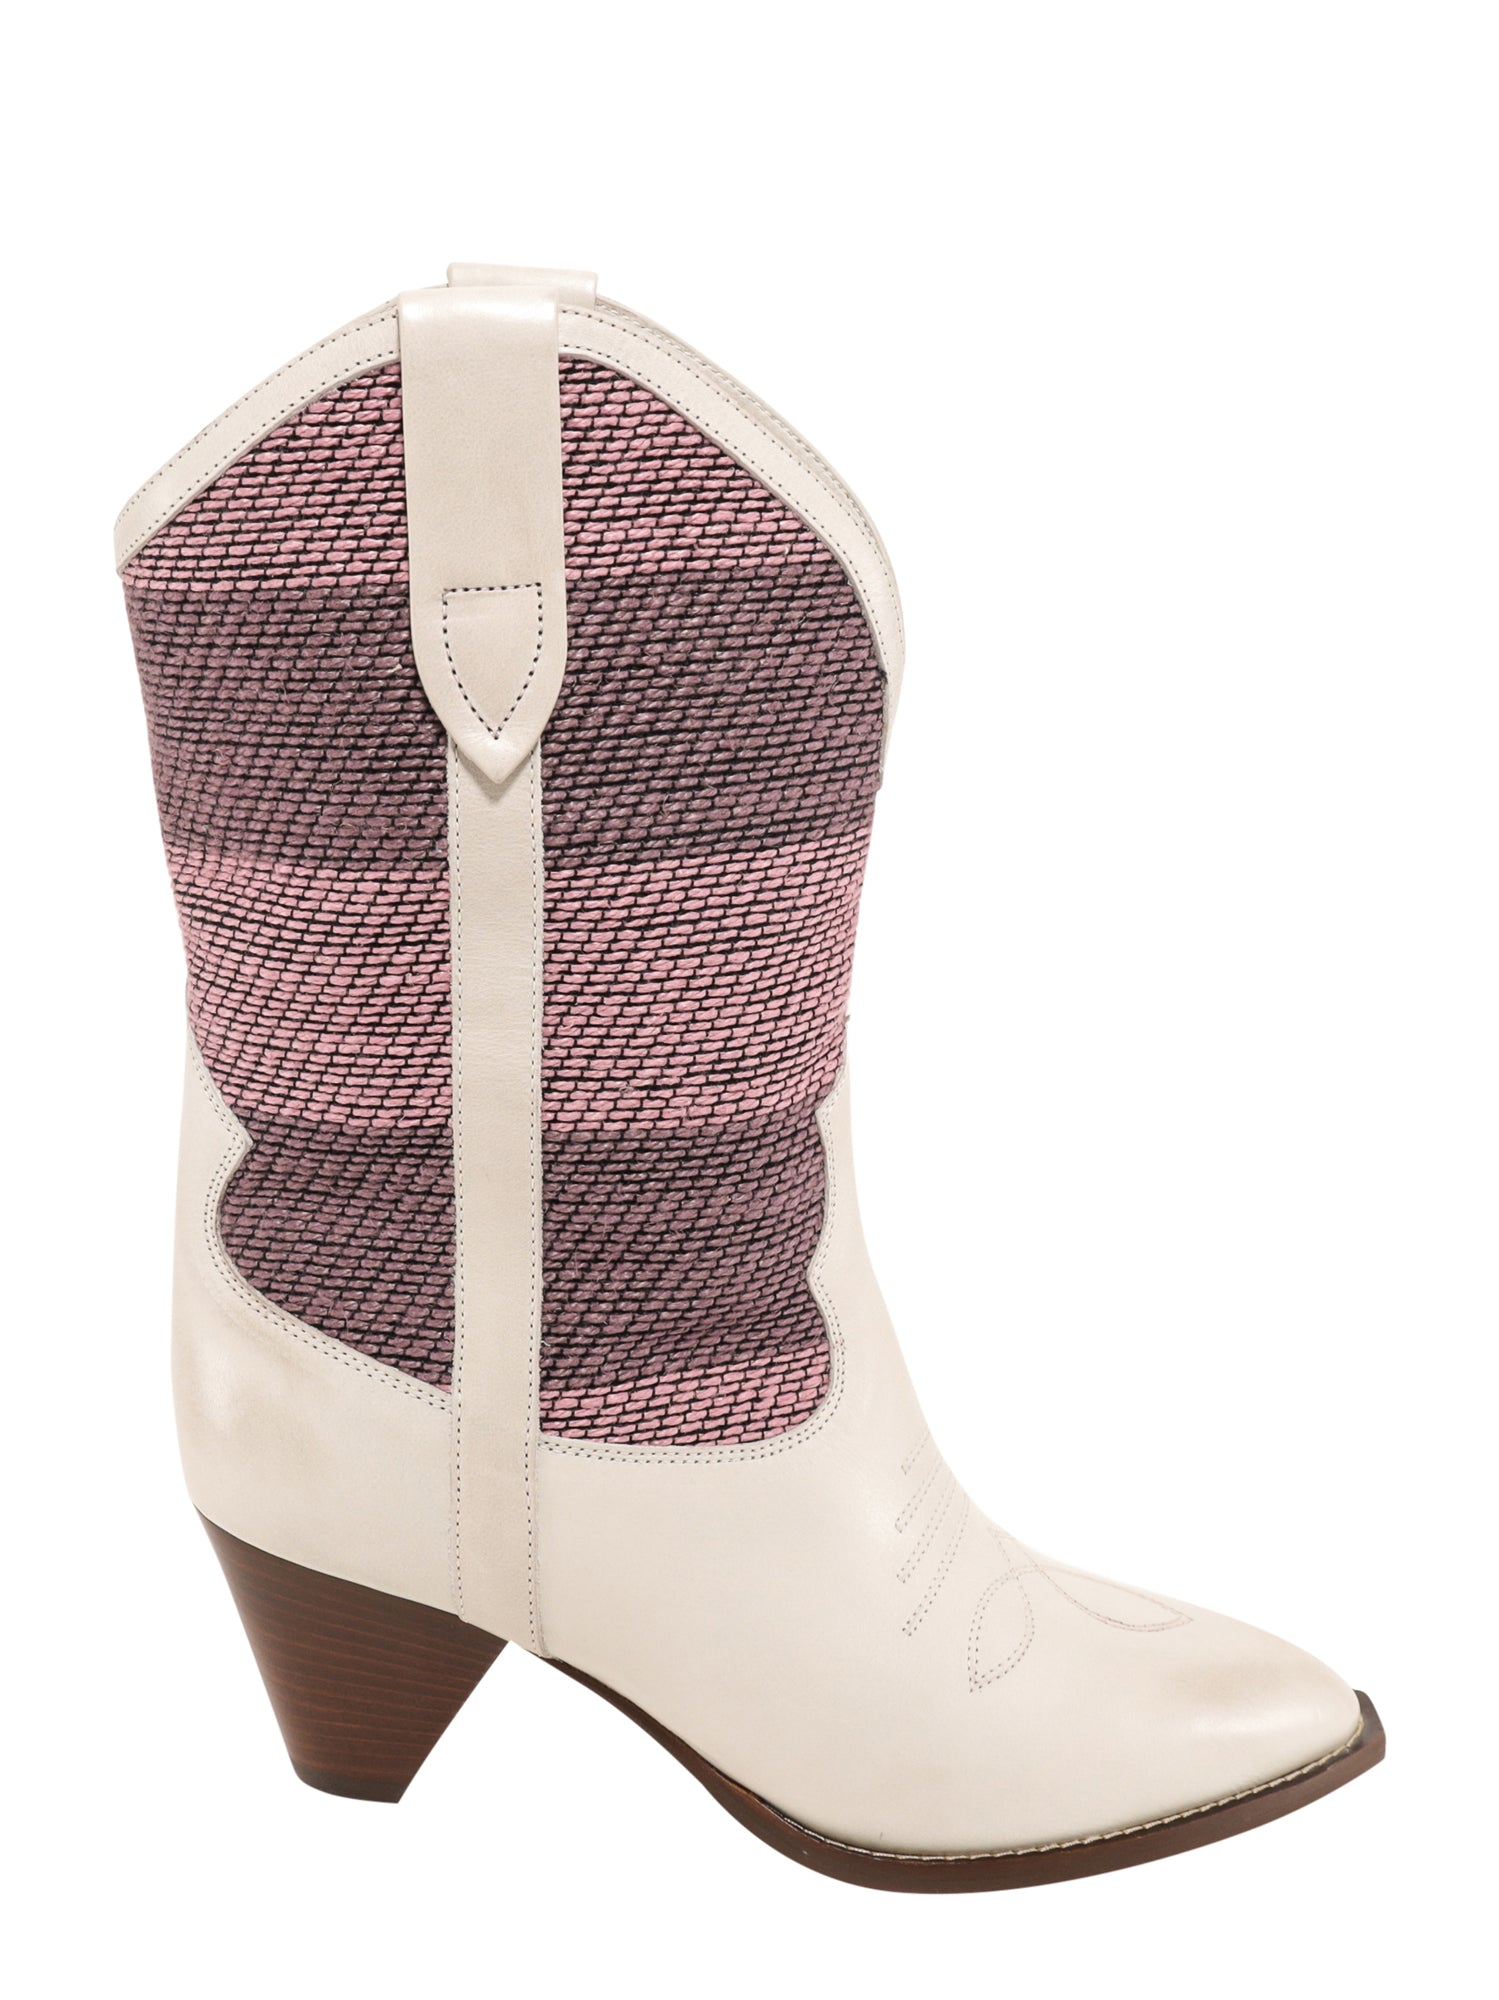 Isabel Marant Leathers ISABEL MARANT STRIPED PATCHWORK BOOTS